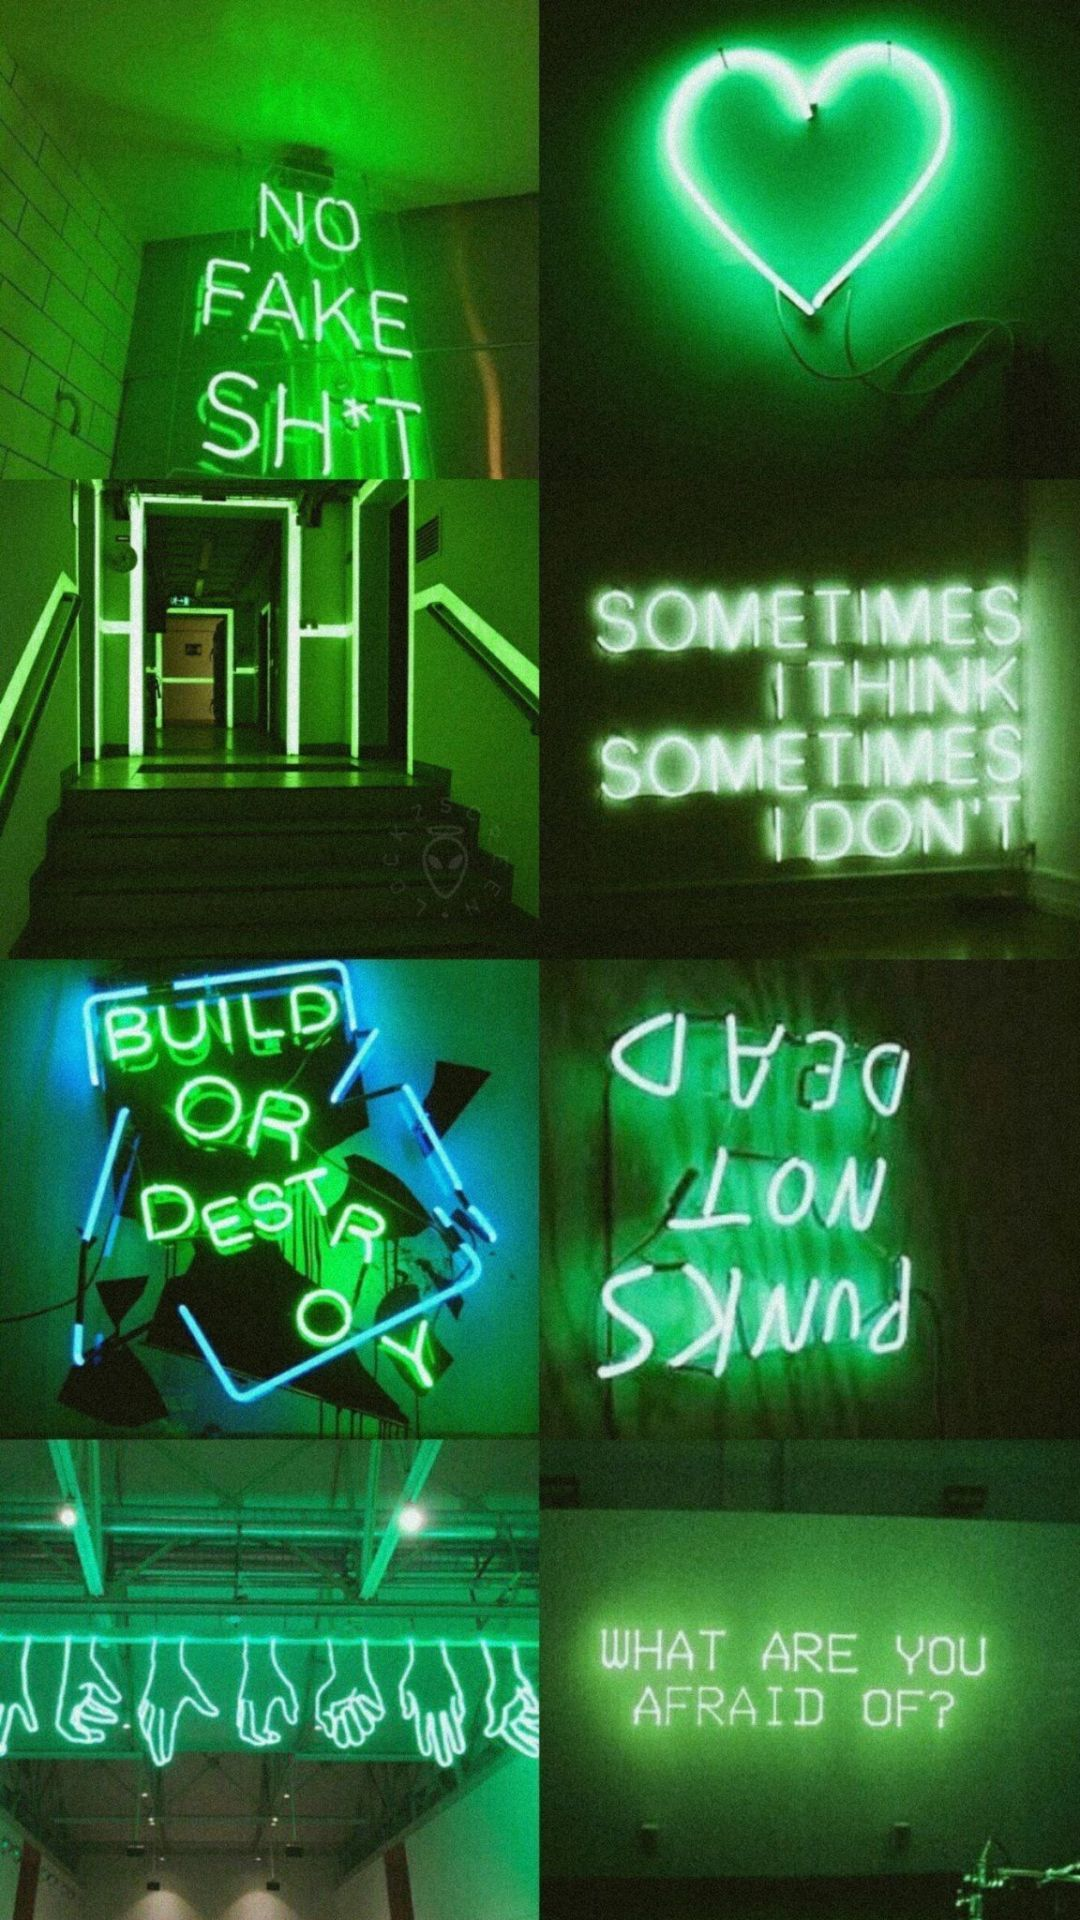 Aesthetic Red And Green In 2020 Green Aesthetic Tumblr Green Aesthetic Neon Wallpaper